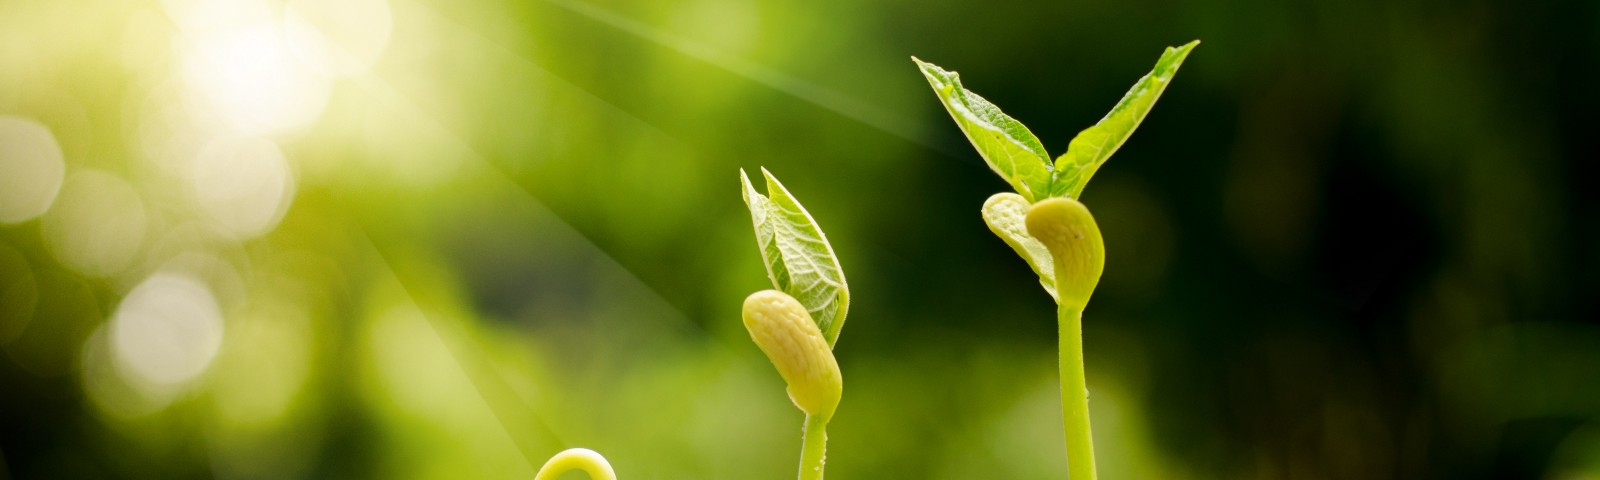 Germinating seed to sprout of nut in agriculture and plant grow sequence with sunlight and green background — Image